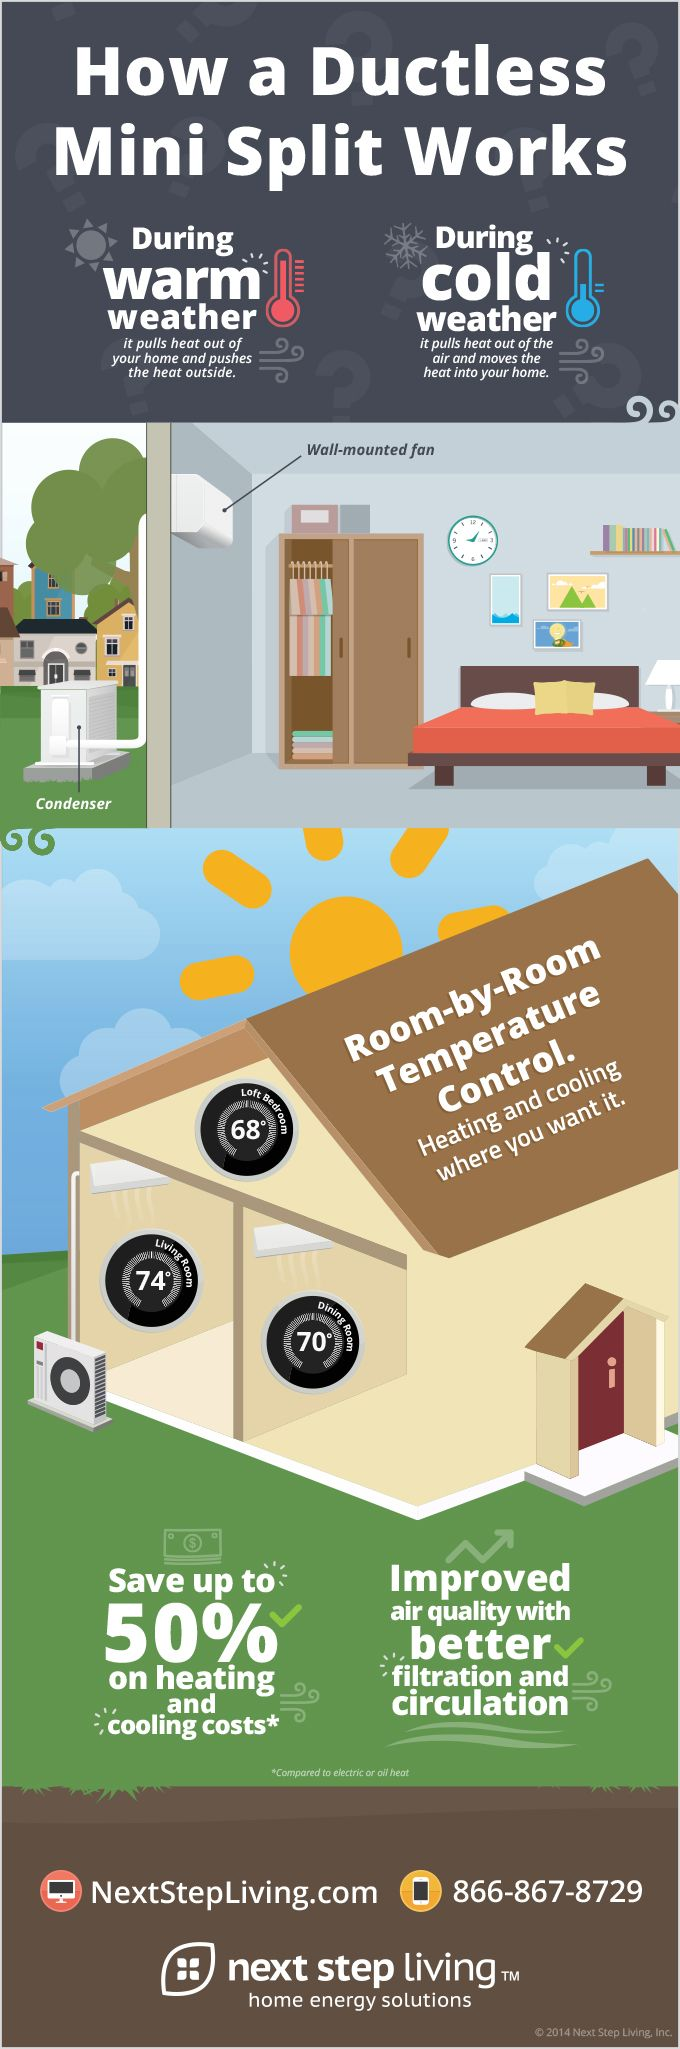 Learn how a ductless mini split works. [Infographic